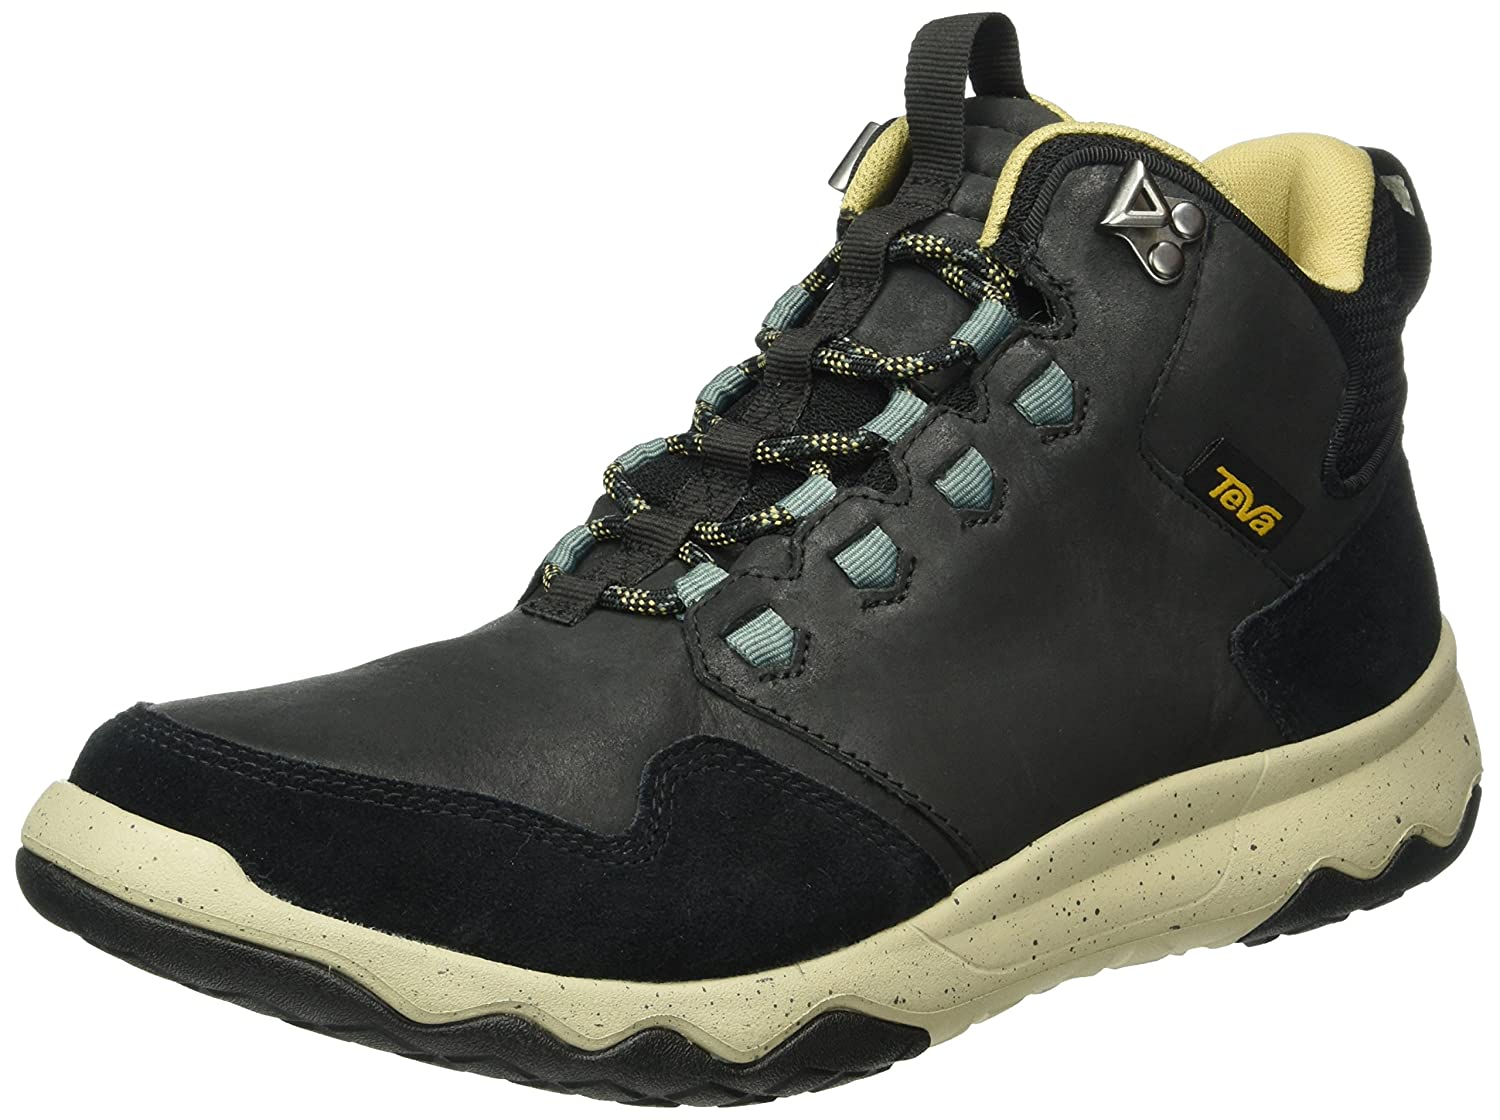 990e8073d8 Amazon.com | Teva Men's M Arrowood Lux Mid Waterproof Hiking Boot | Hiking  Boots